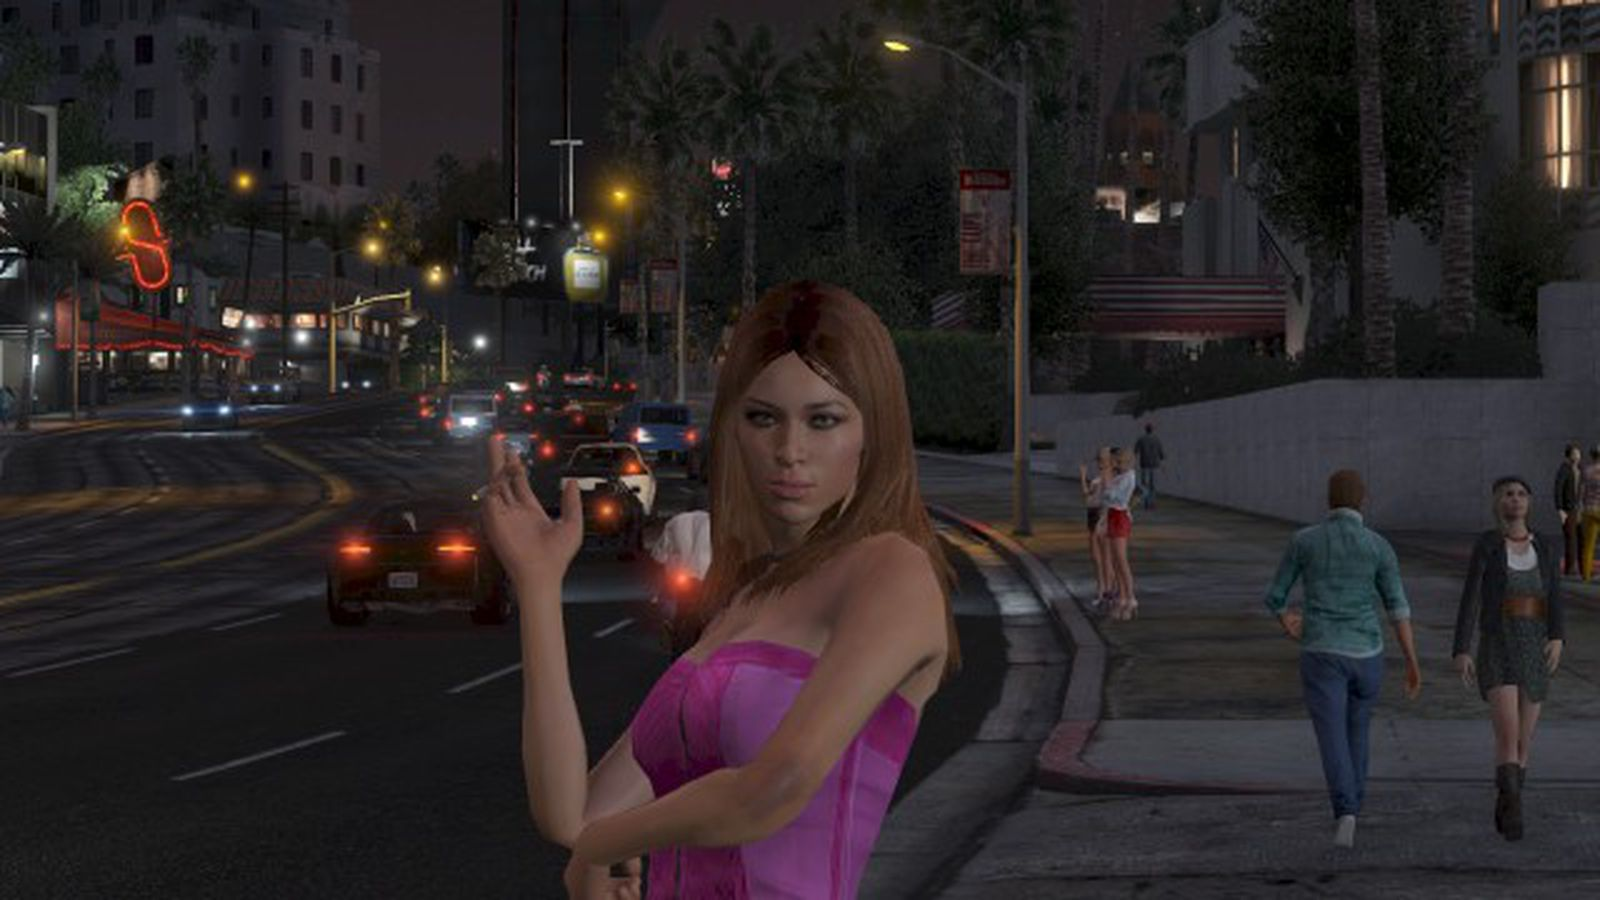 Very Bad Girl Wallpaper Grand Theft Auto 5 S Misogyny Is A Problem Its Creators